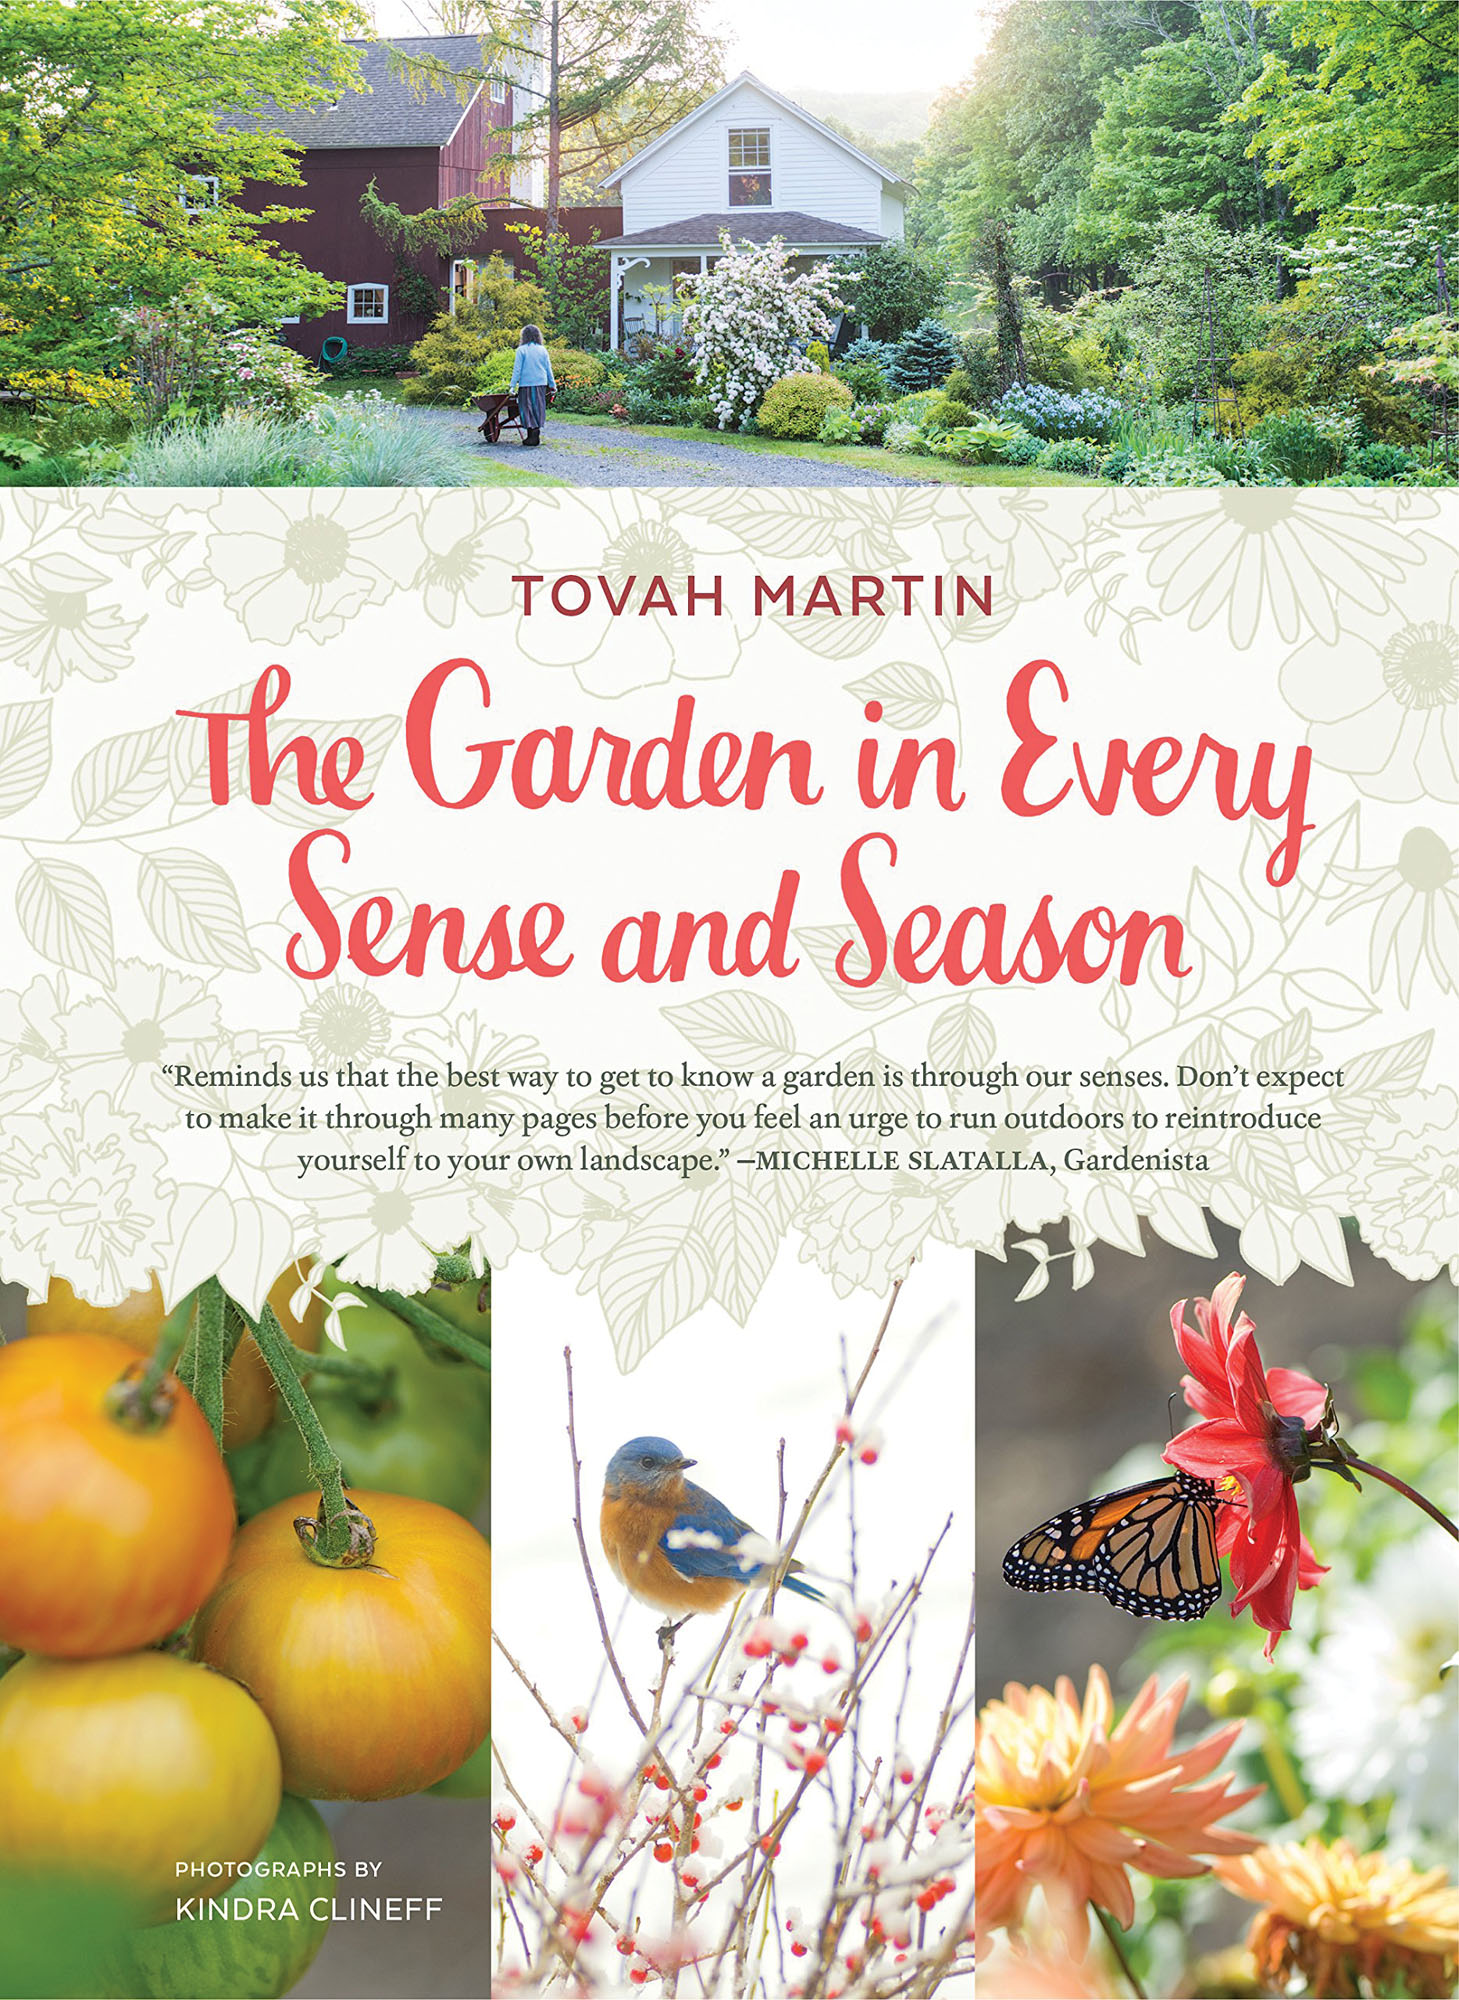 The Garden in Every Sense and Season, gardening book